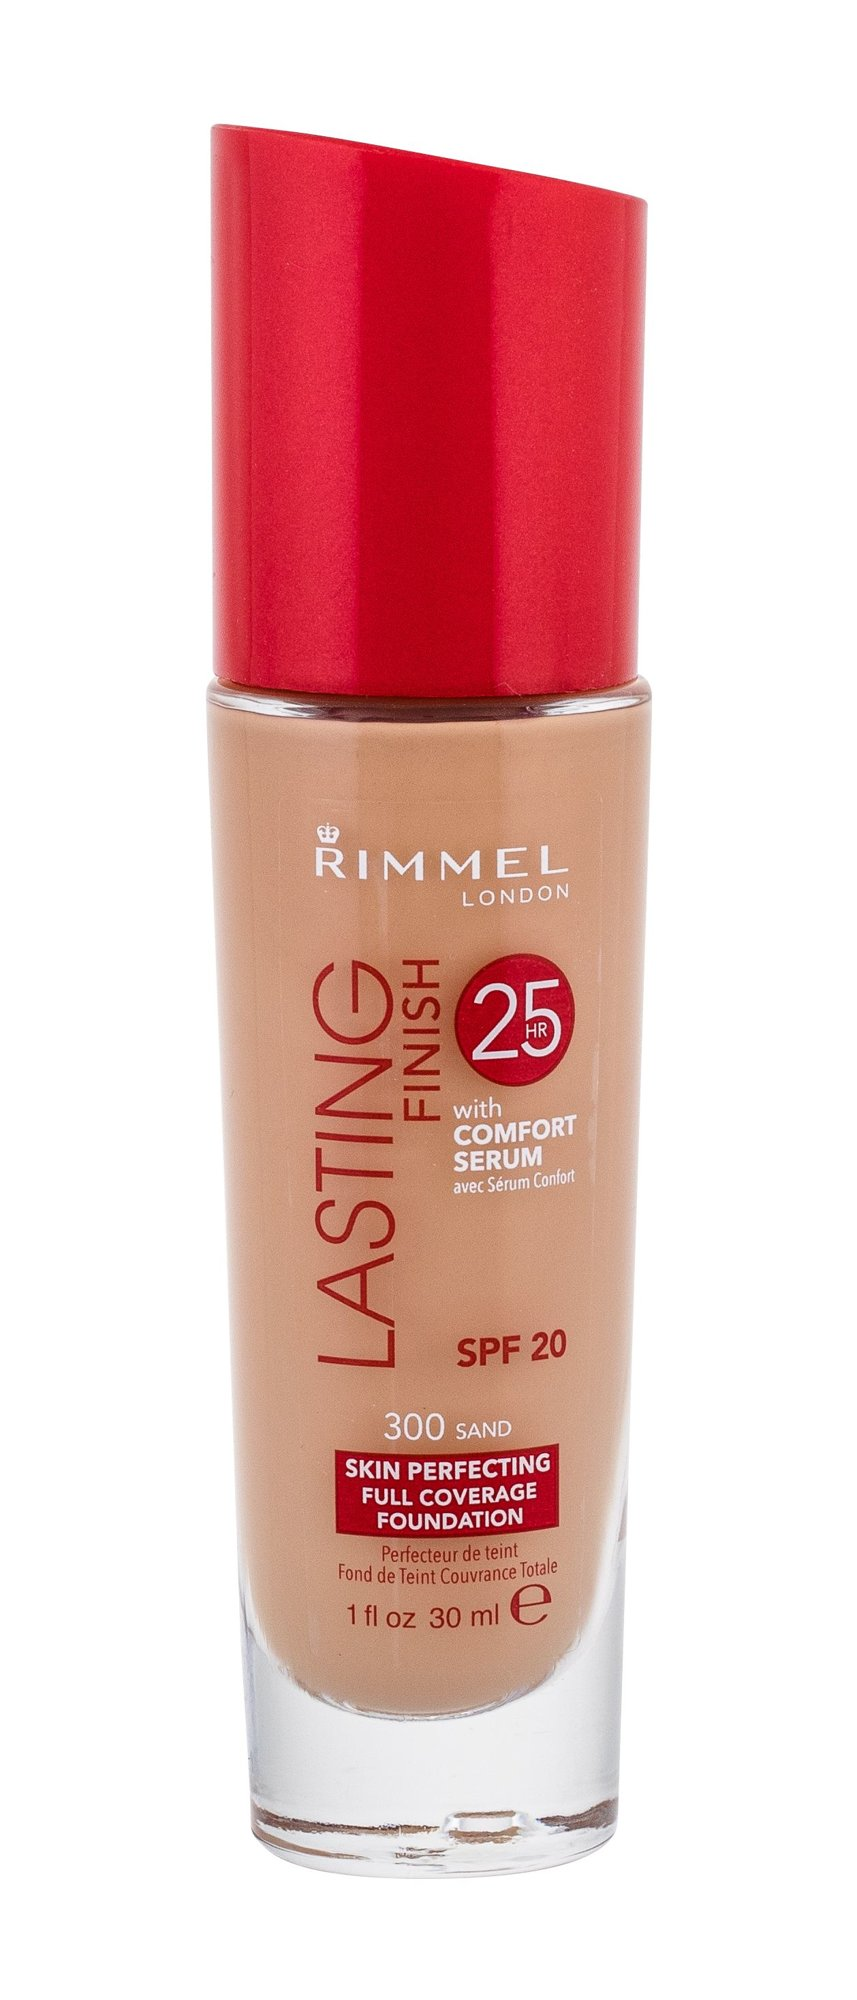 Rimmel London Lasting Finish Cosmetic 30ml 300 Sand